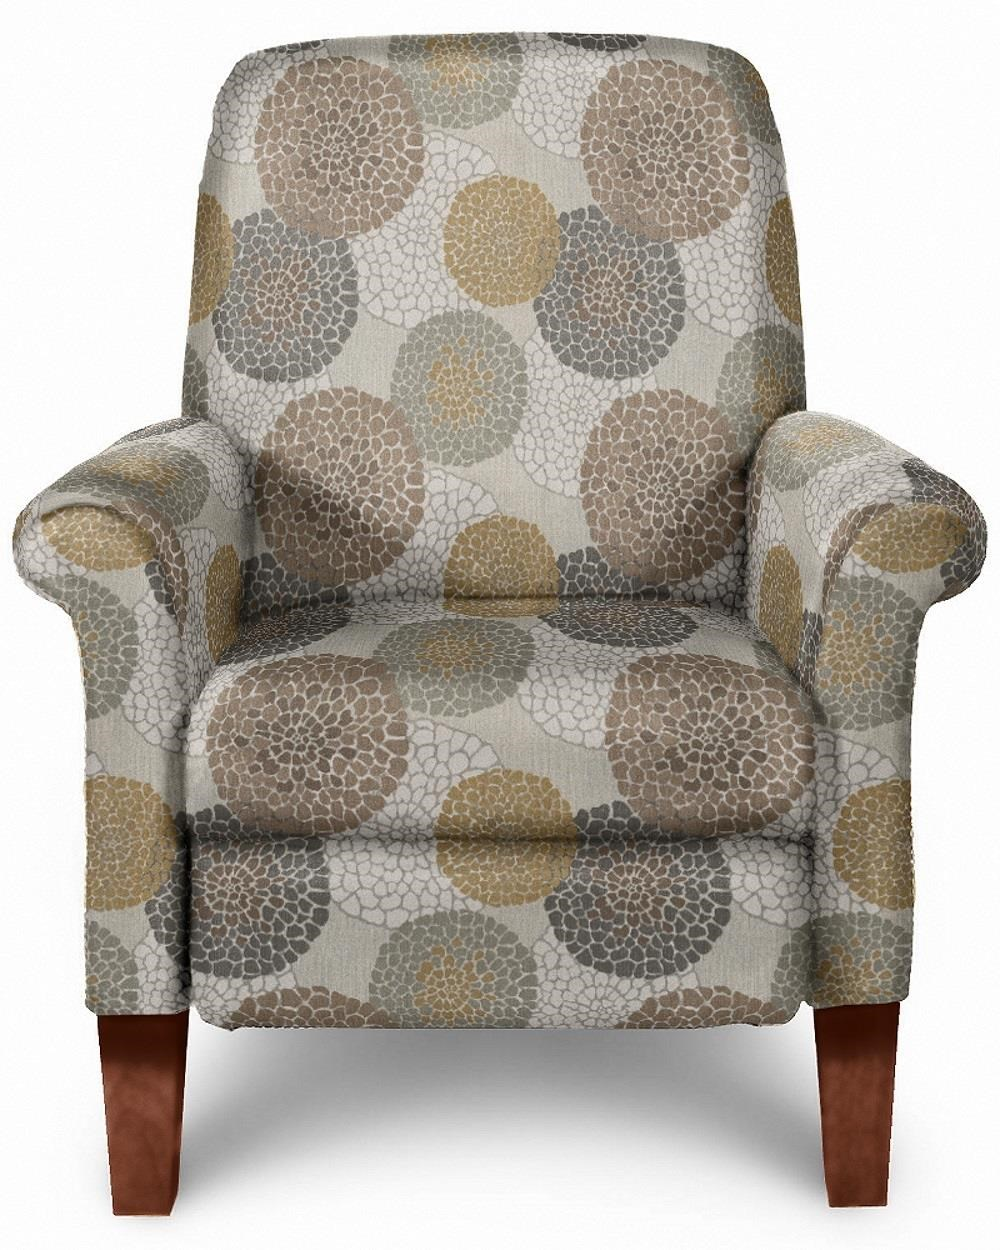 La-Z-Boy Fabric Fletcher Pumice High Leg Recliner  sc 1 st  Great American Home Store & High Leg Recliners | Memphis TN Southaven MS High Leg Recliners ... islam-shia.org